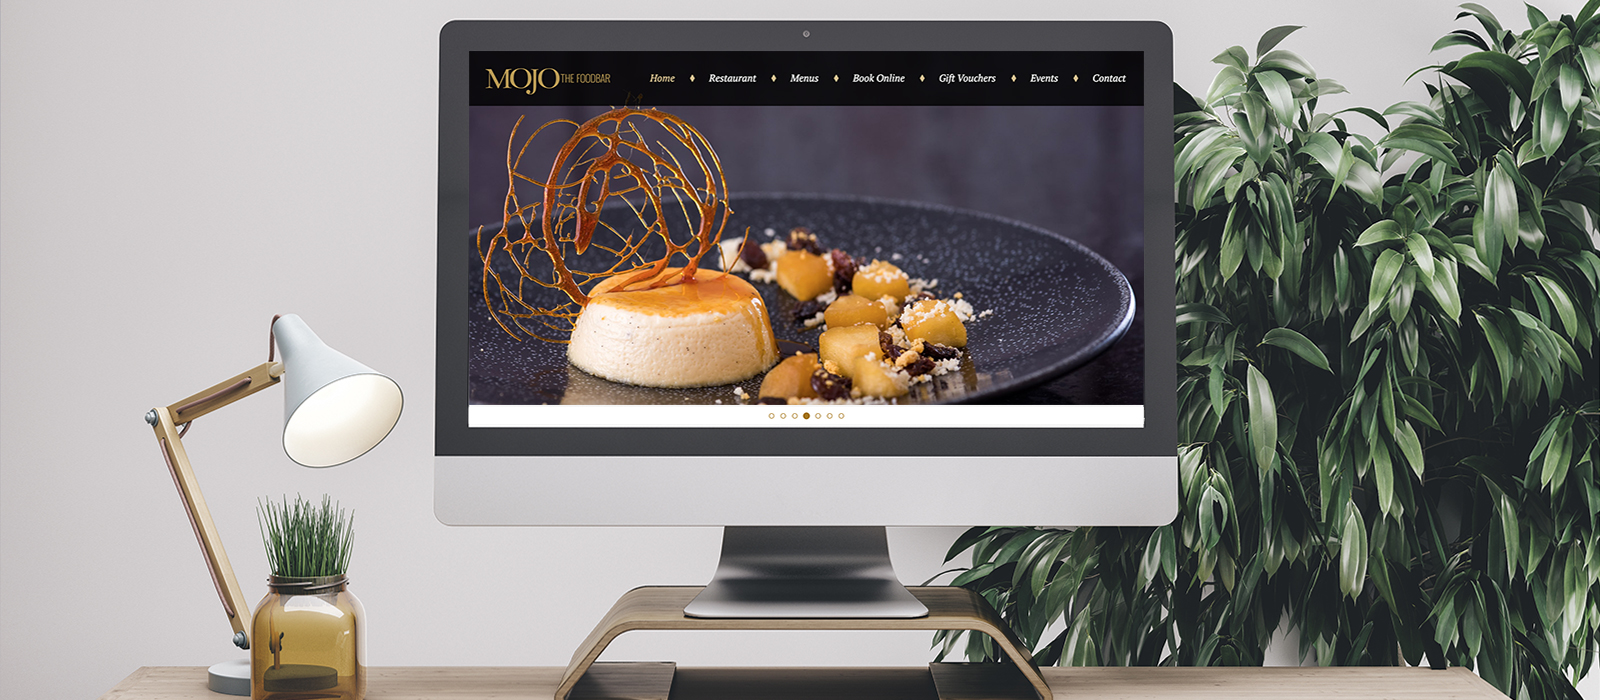 Branding, Menu Design and Website for Mojo The Foodbar